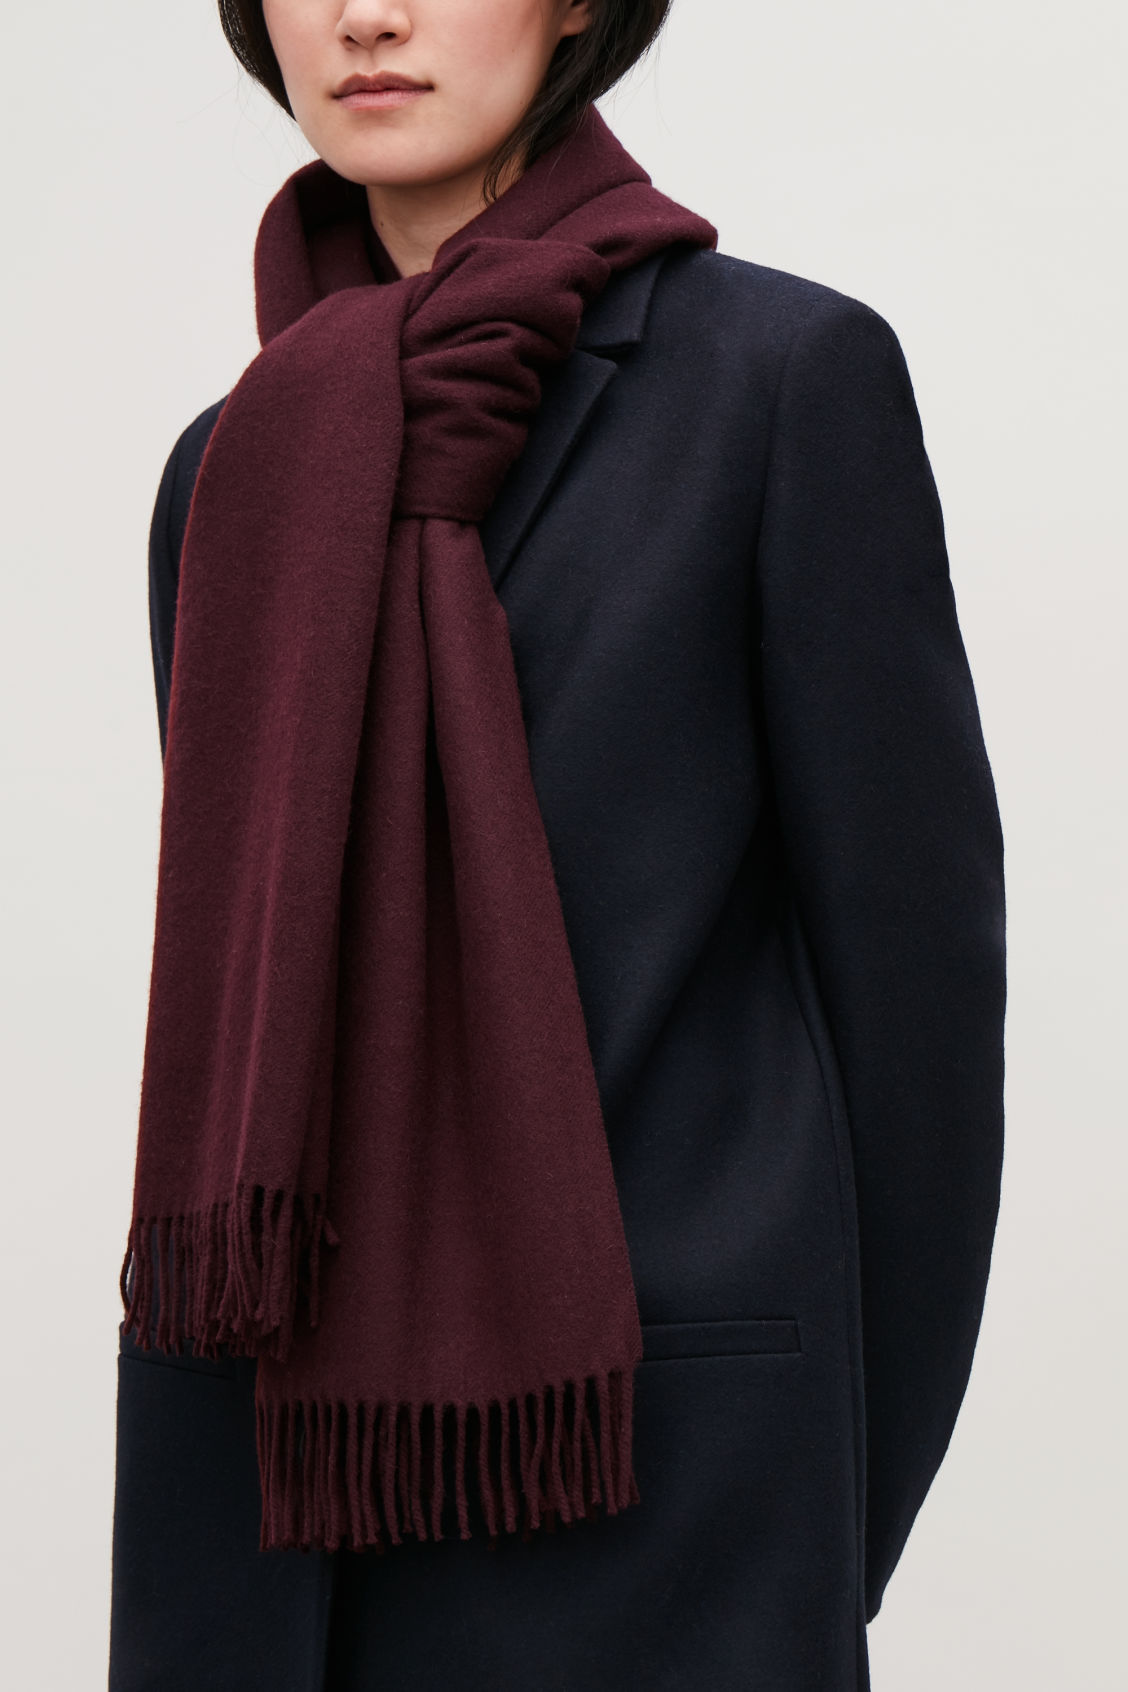 Detailed image of Cos wool-cashmere scarf in red